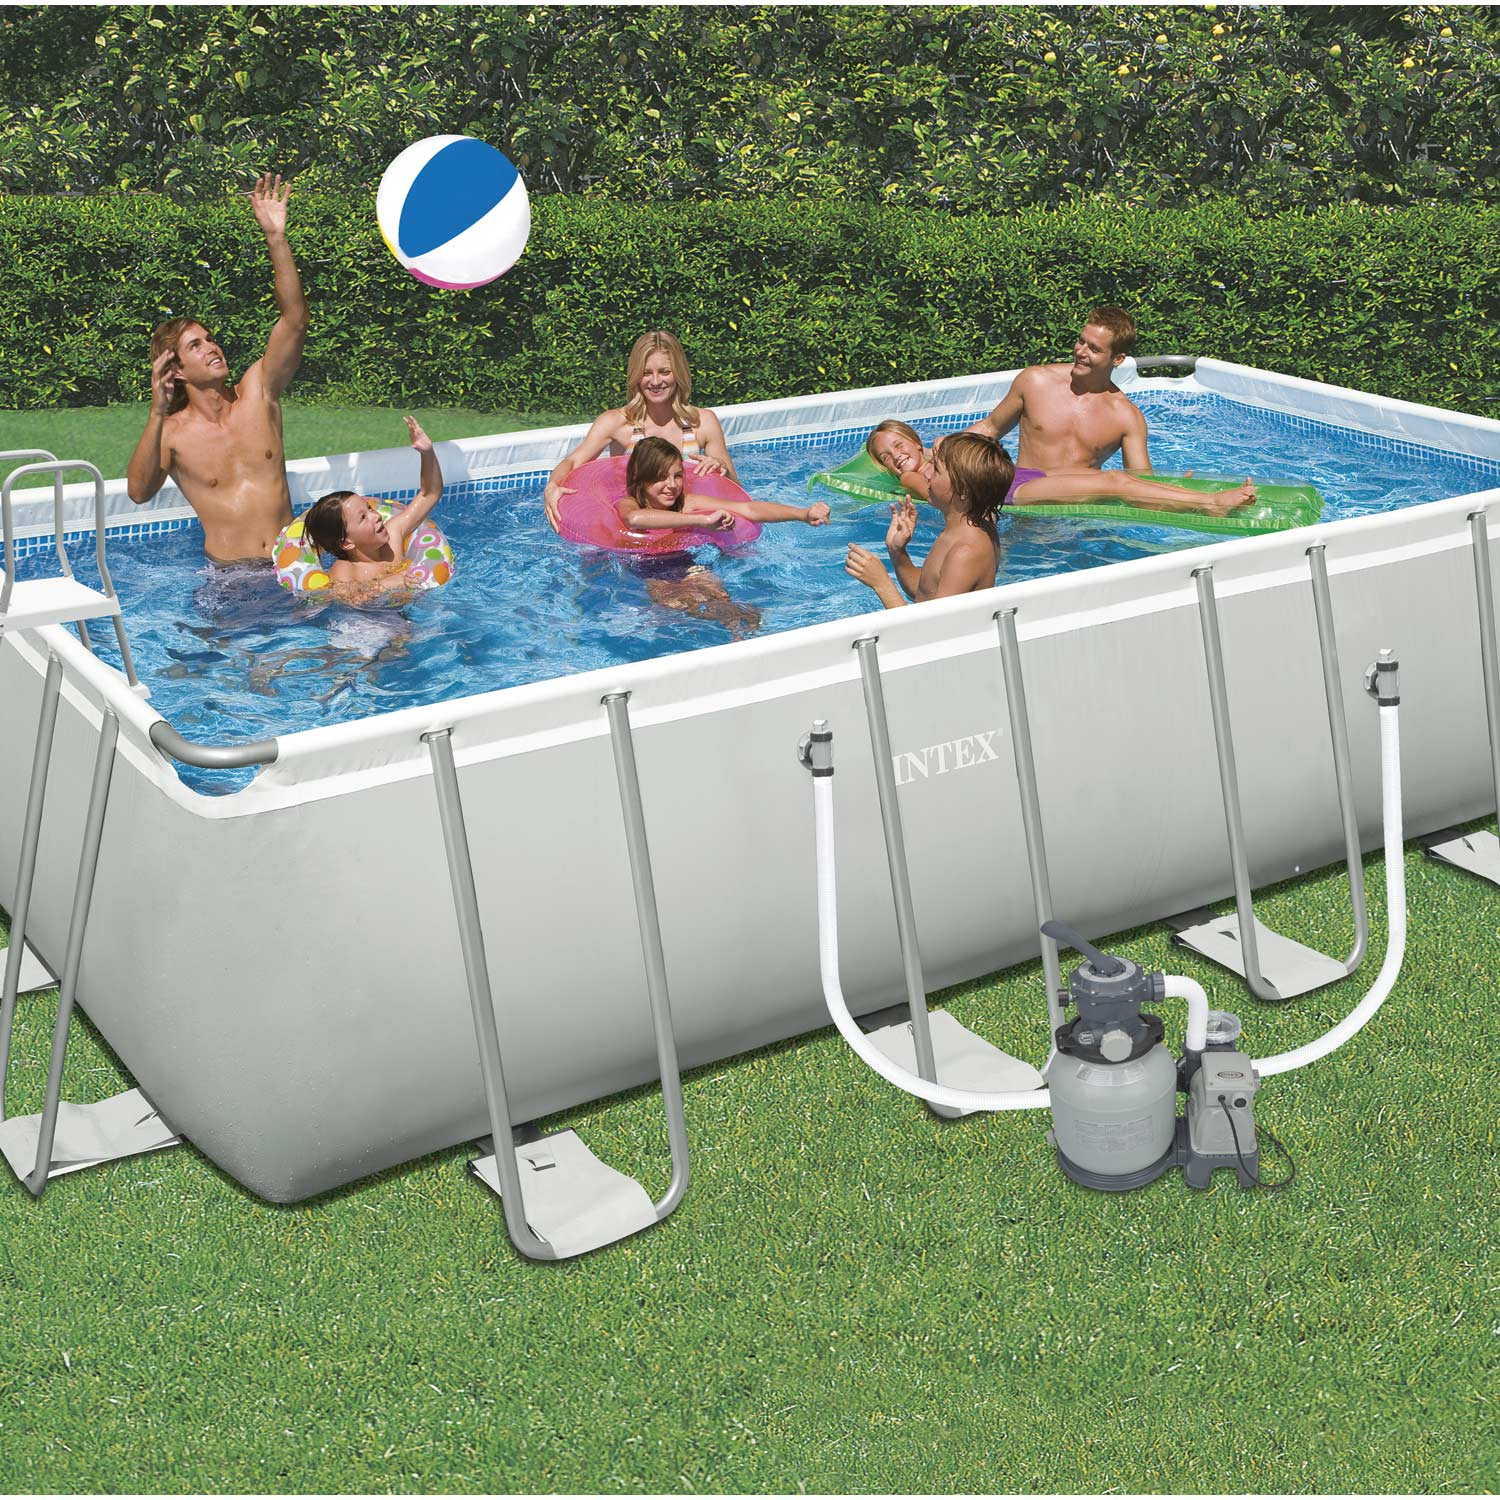 Piscine hors sol autoportante tubulaire ultra silver intex for Piscine hors sol 3x3